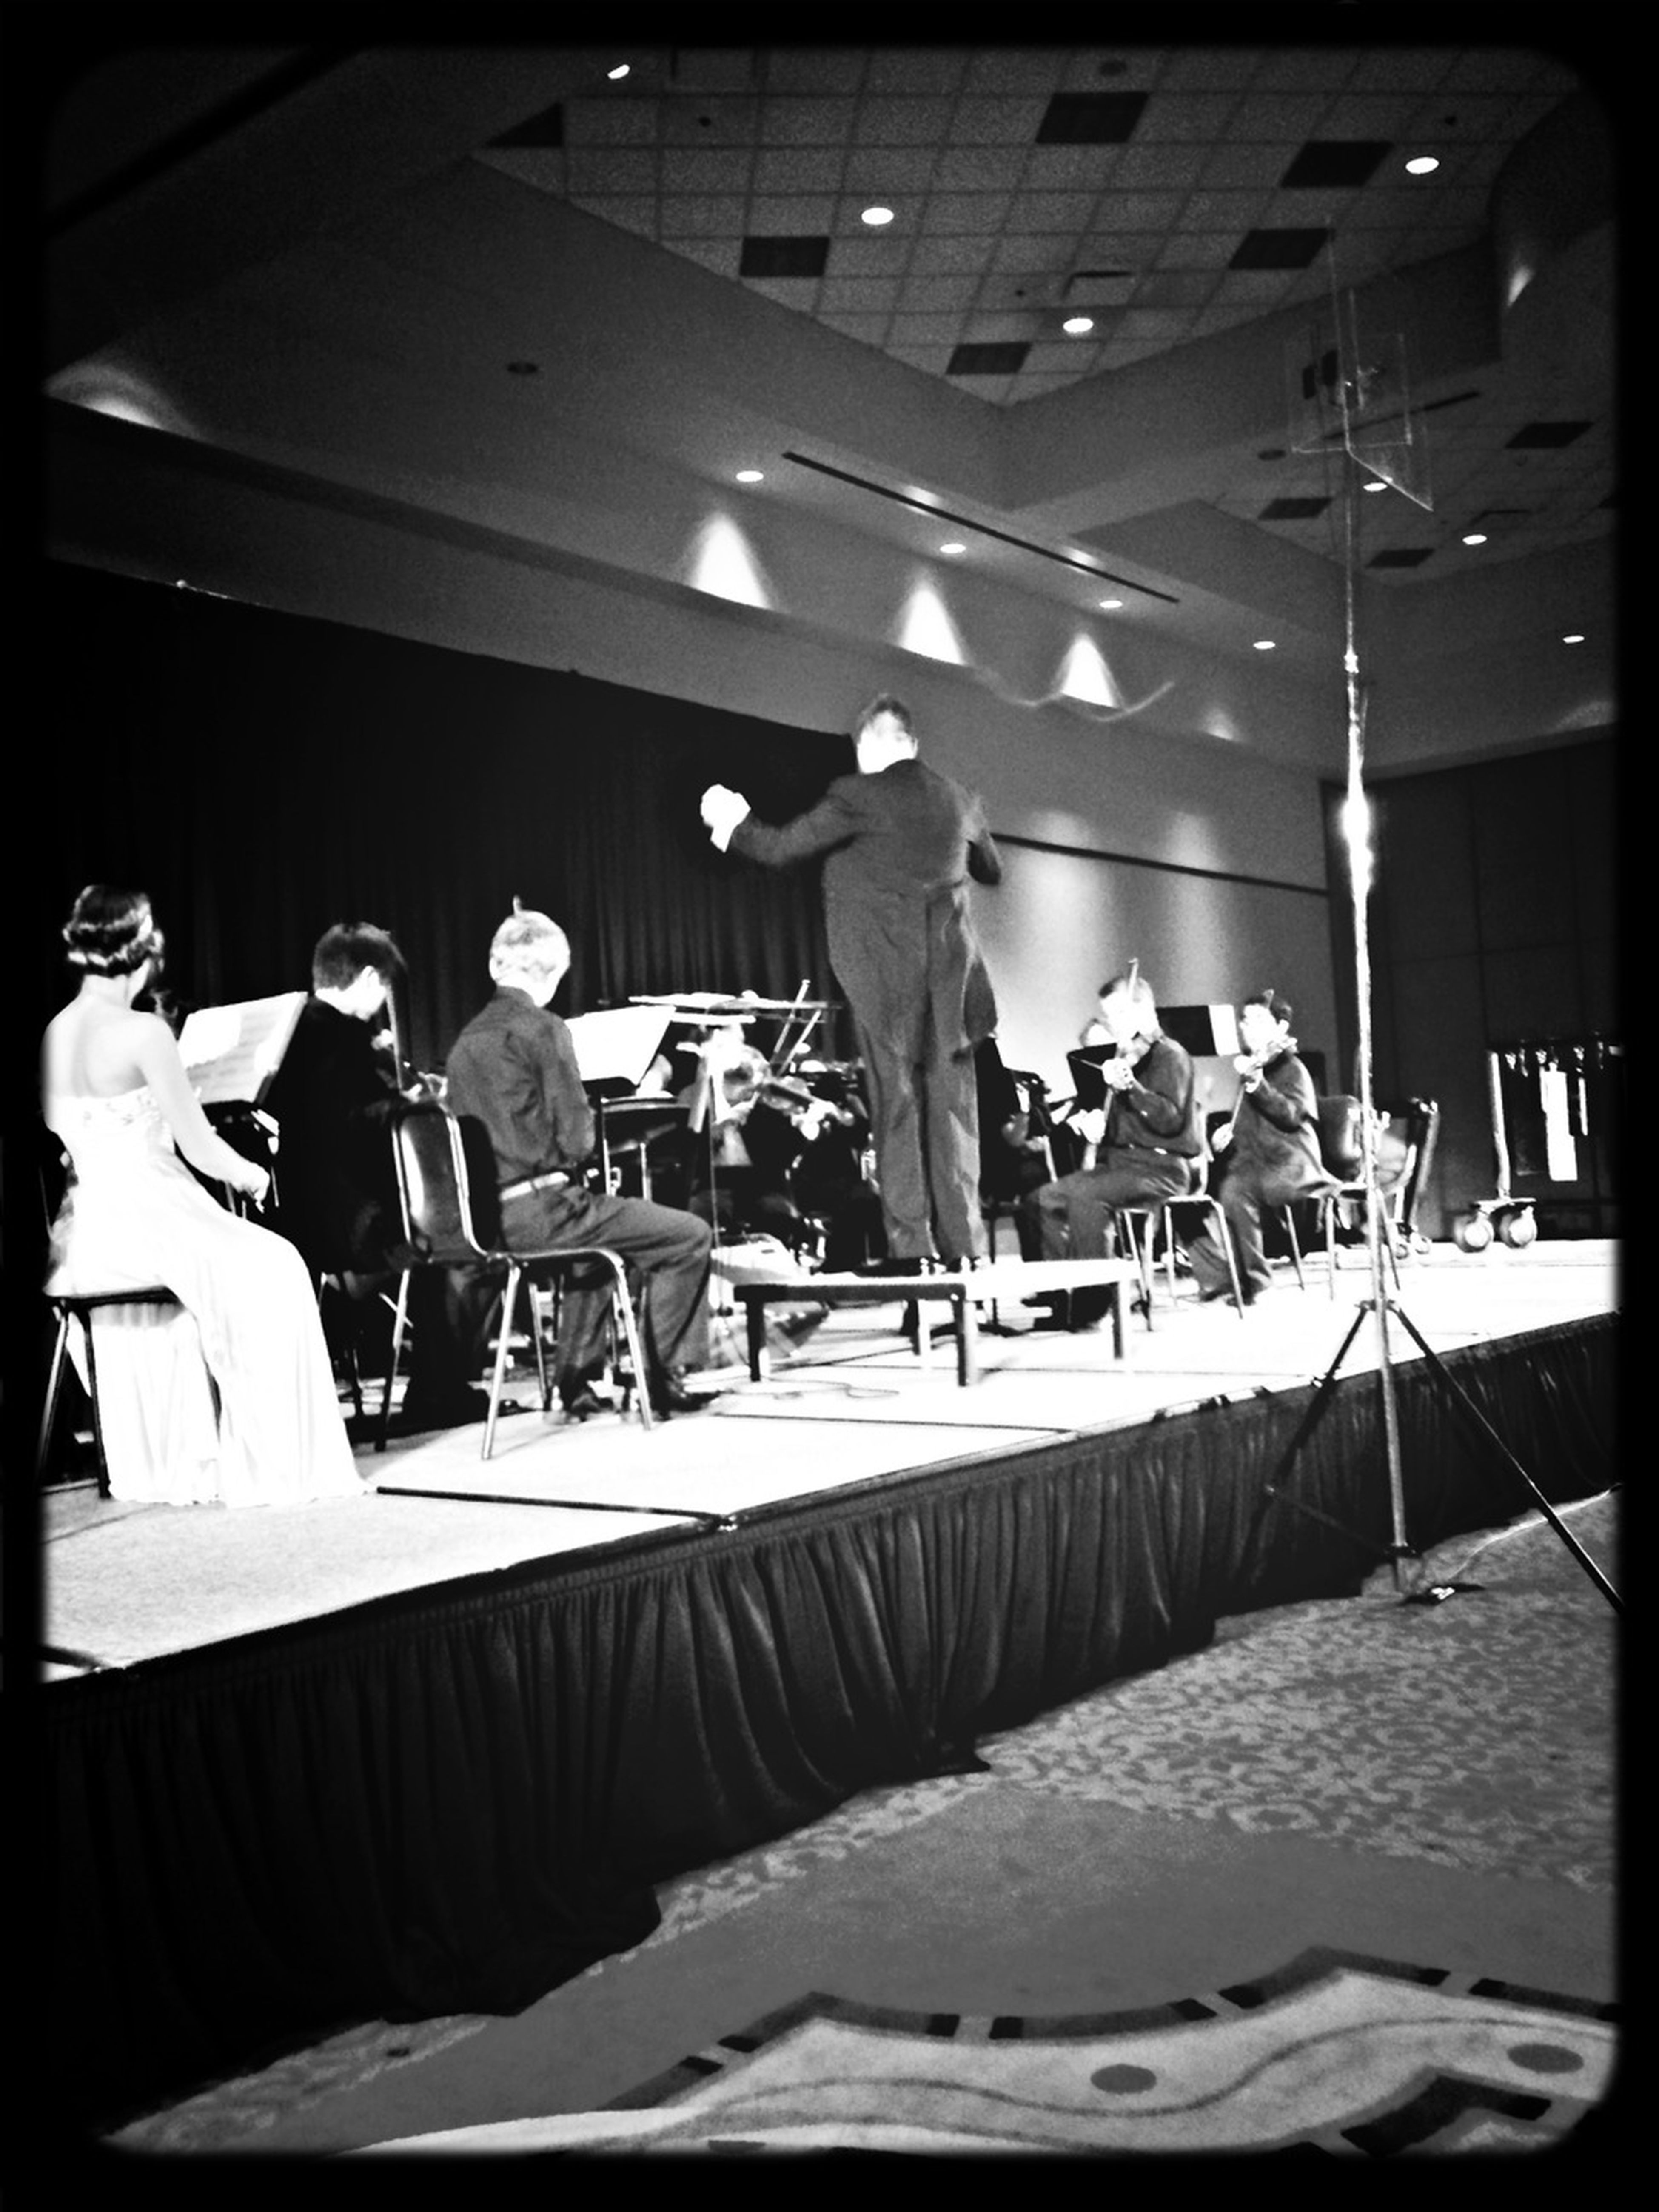 4th Annual S.M.A.R.T. Orchestra Benefit Gala